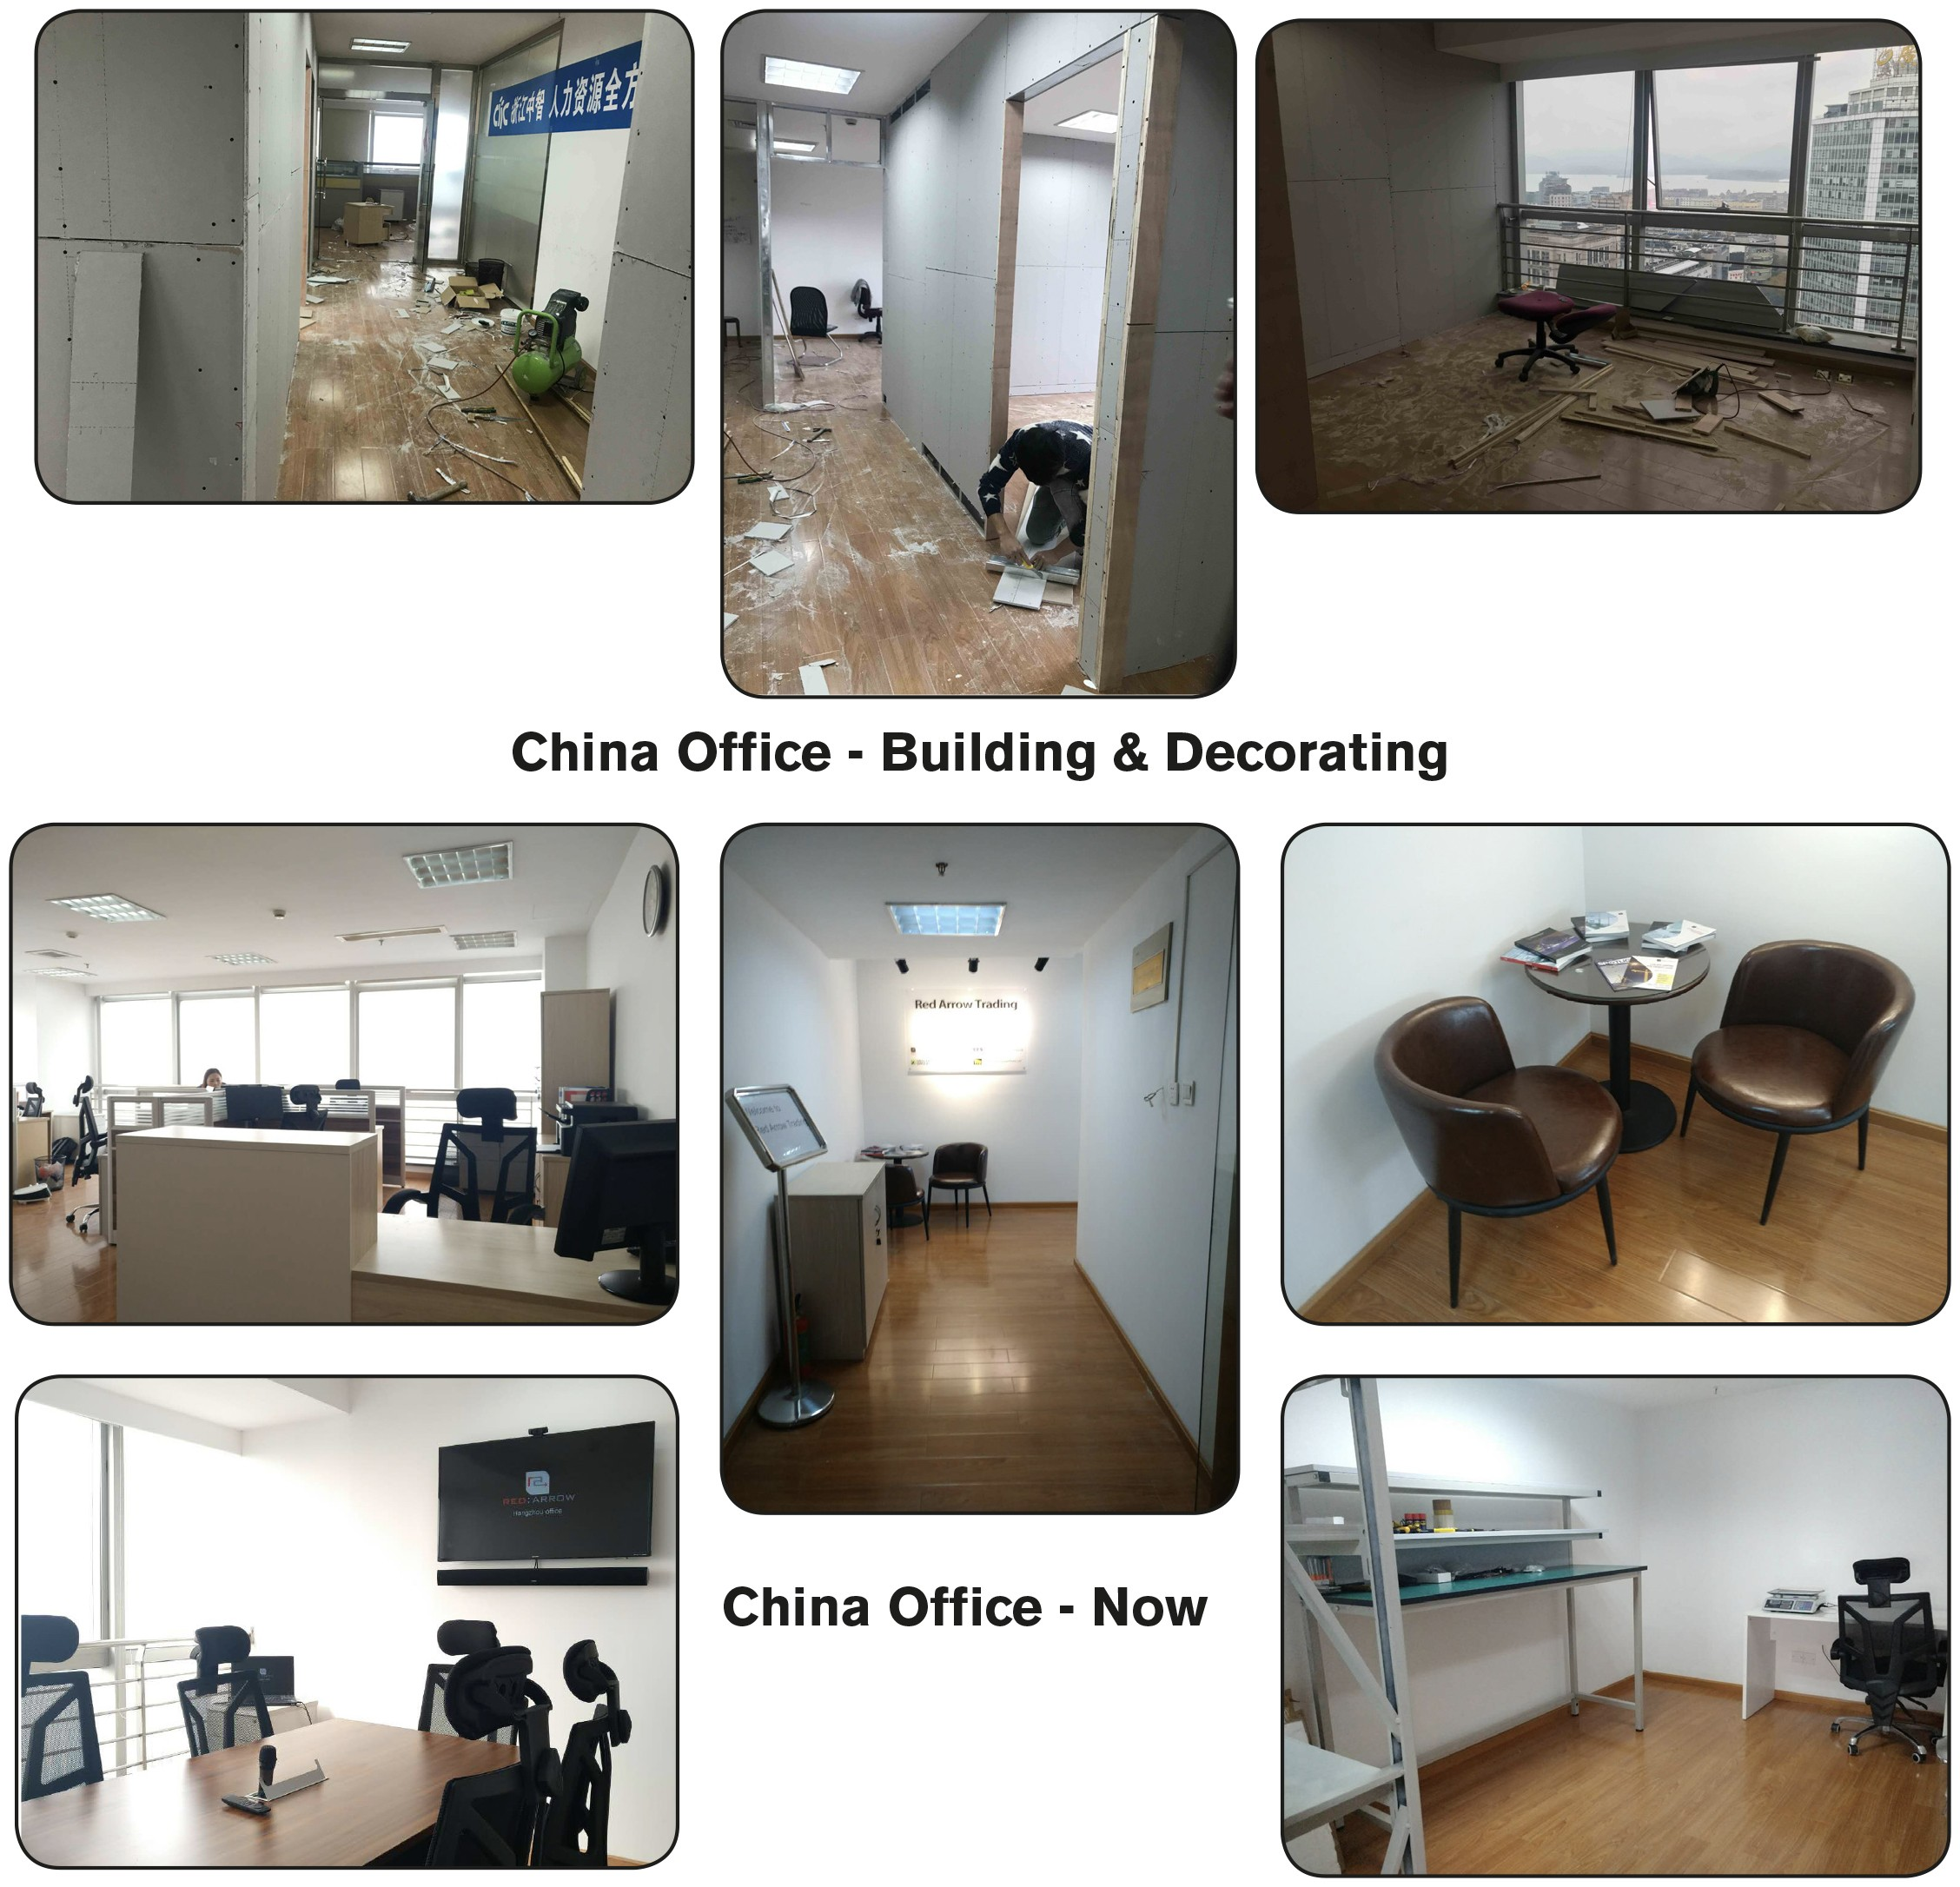 New Premises for the Red Arrow China Office 2018